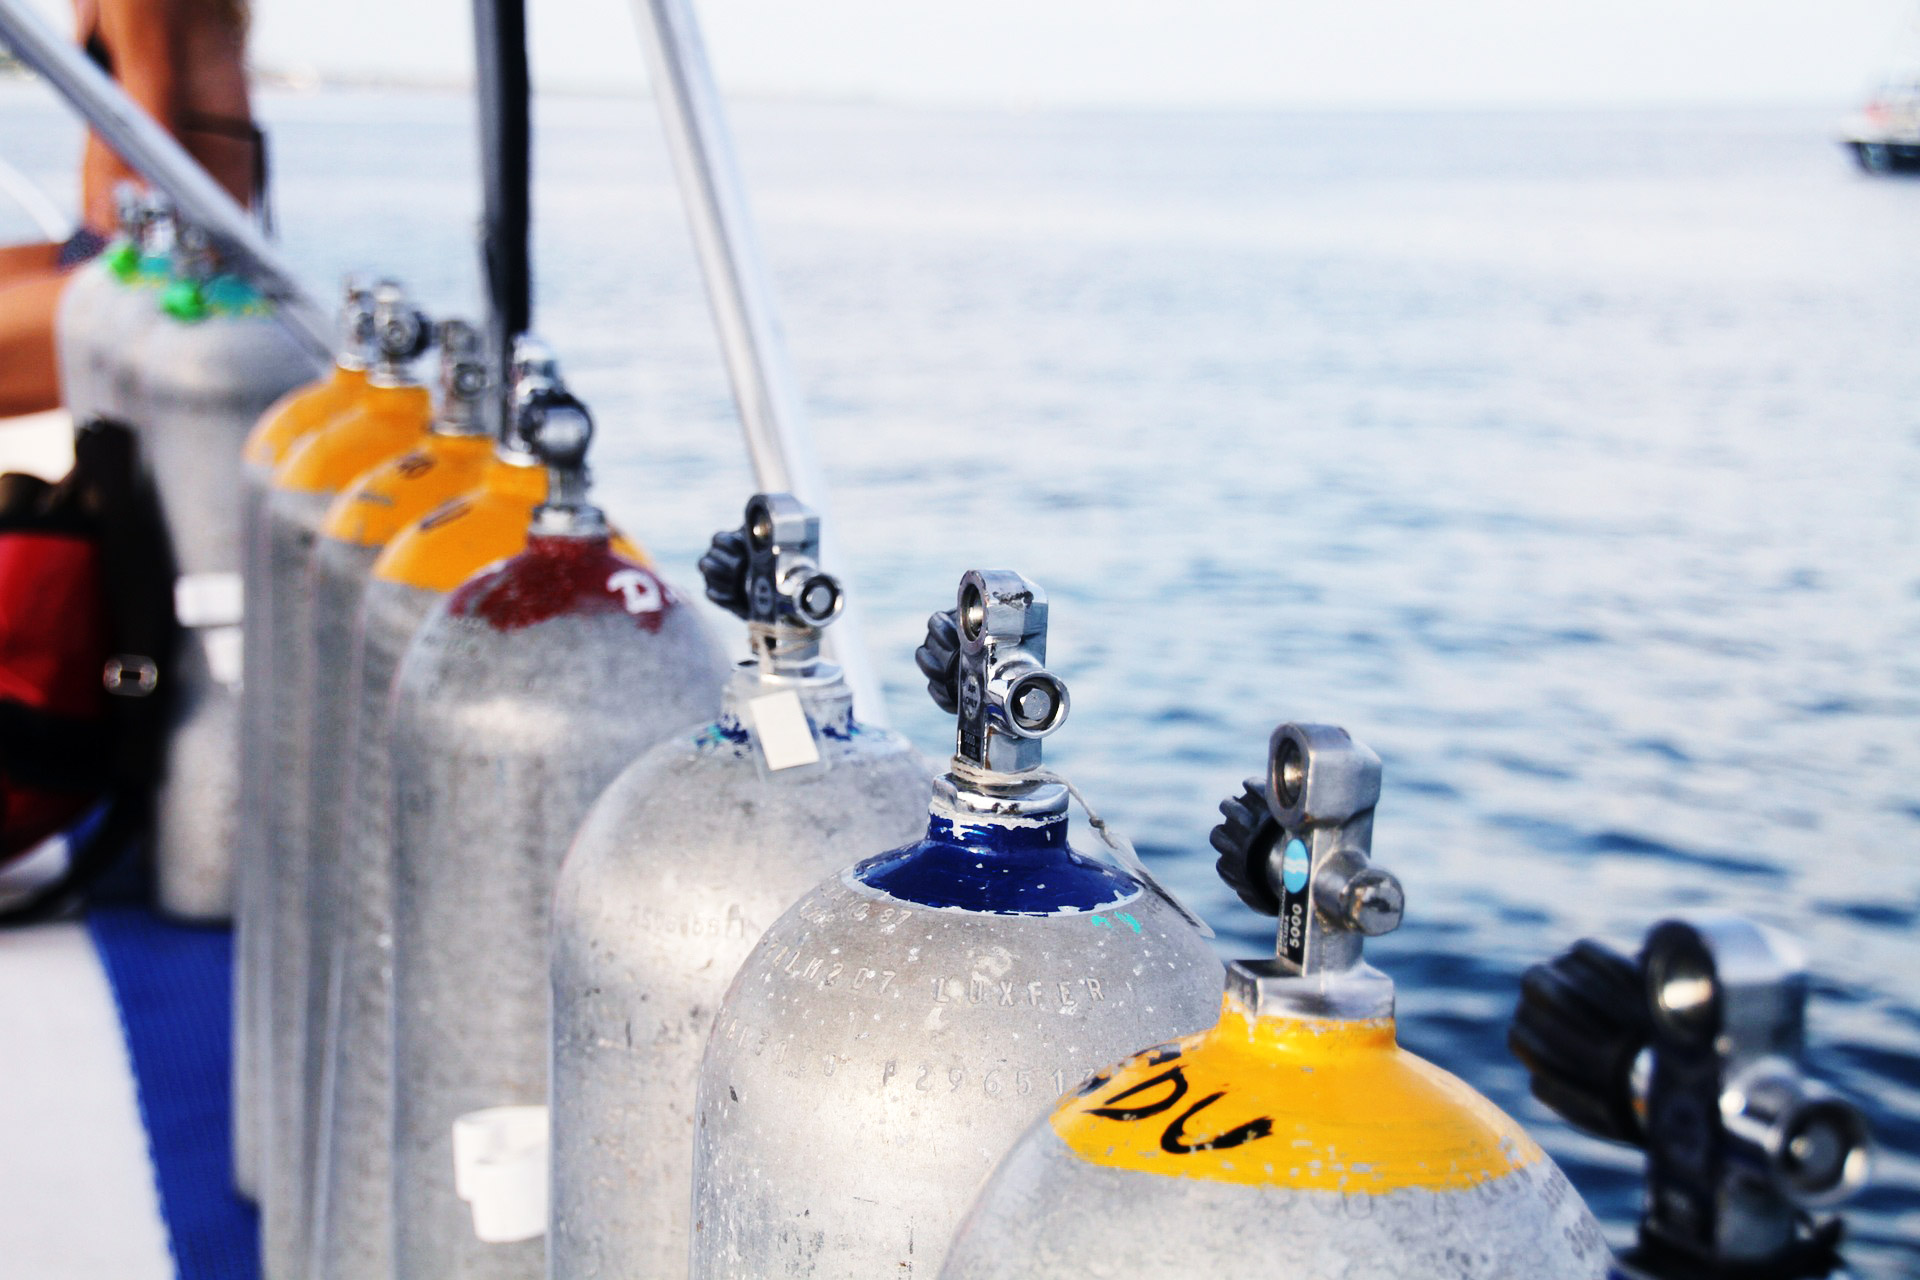 What Two Metals Are Scuba Tanks Made From